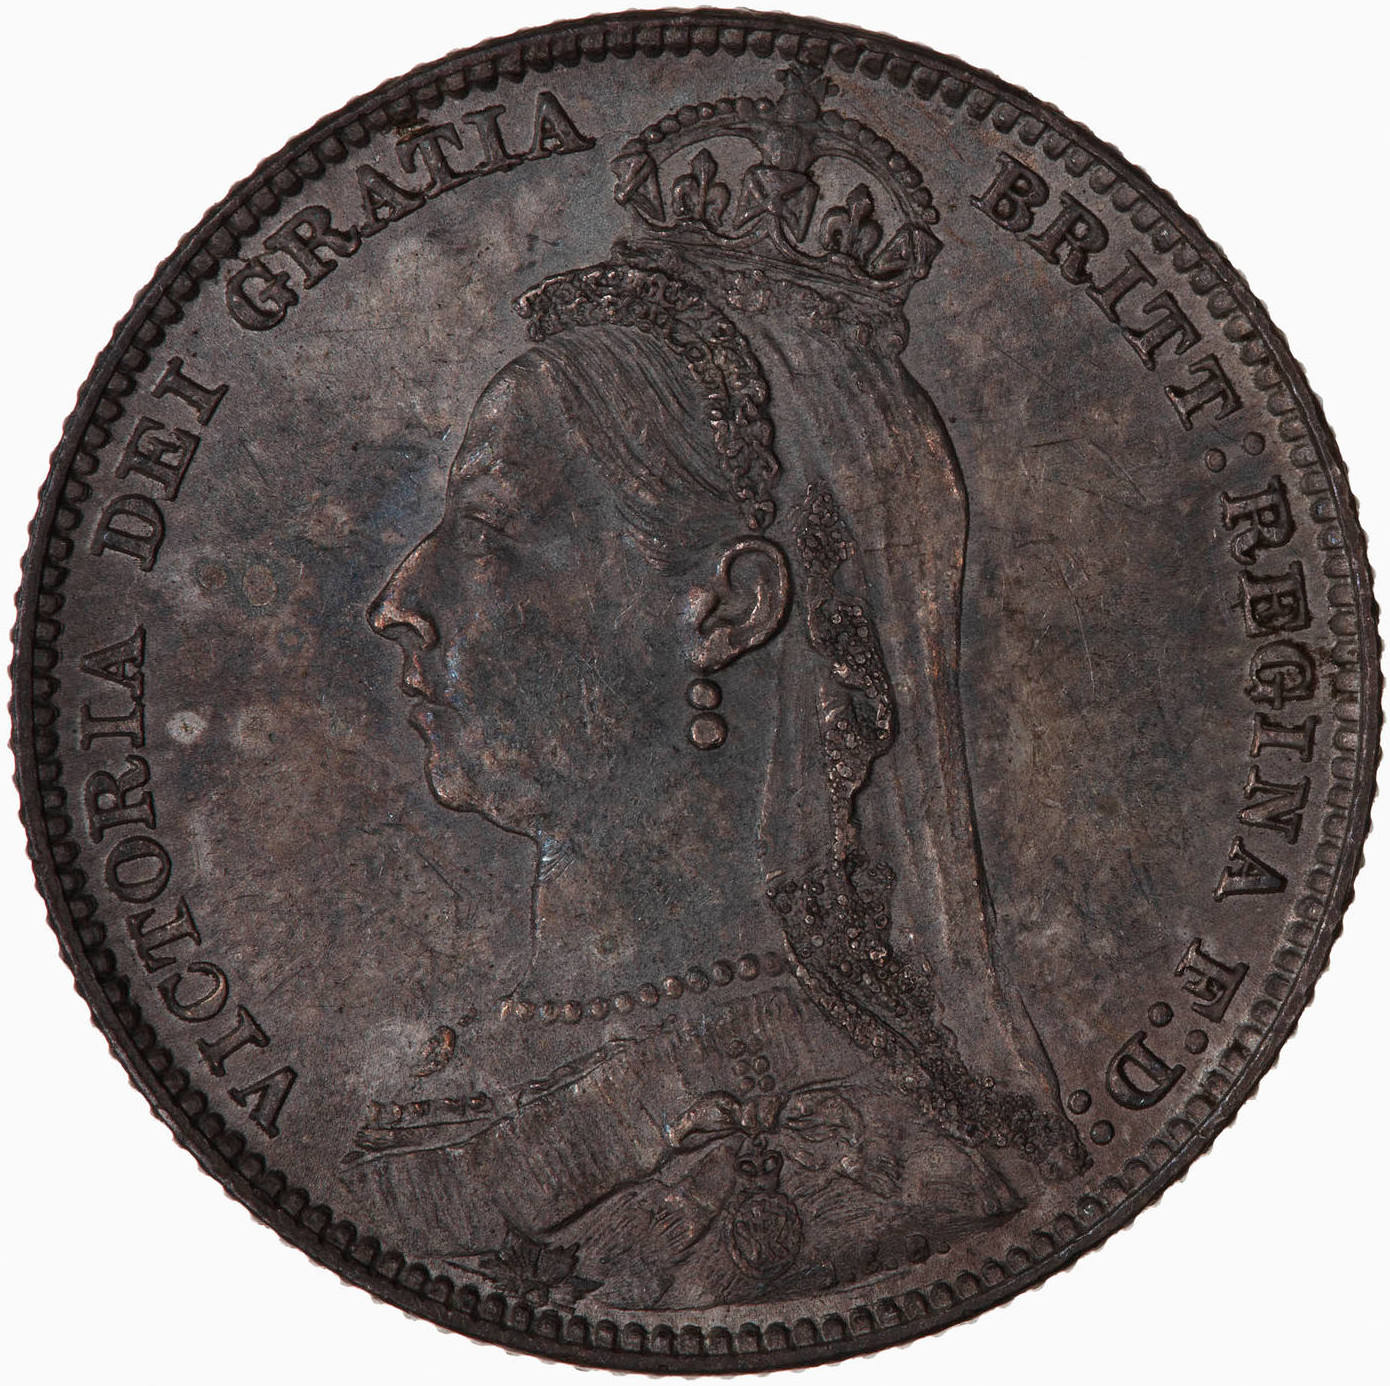 Shilling Shield: Photo Coin - Shilling, Queen Victoria, Great Britain, 1890